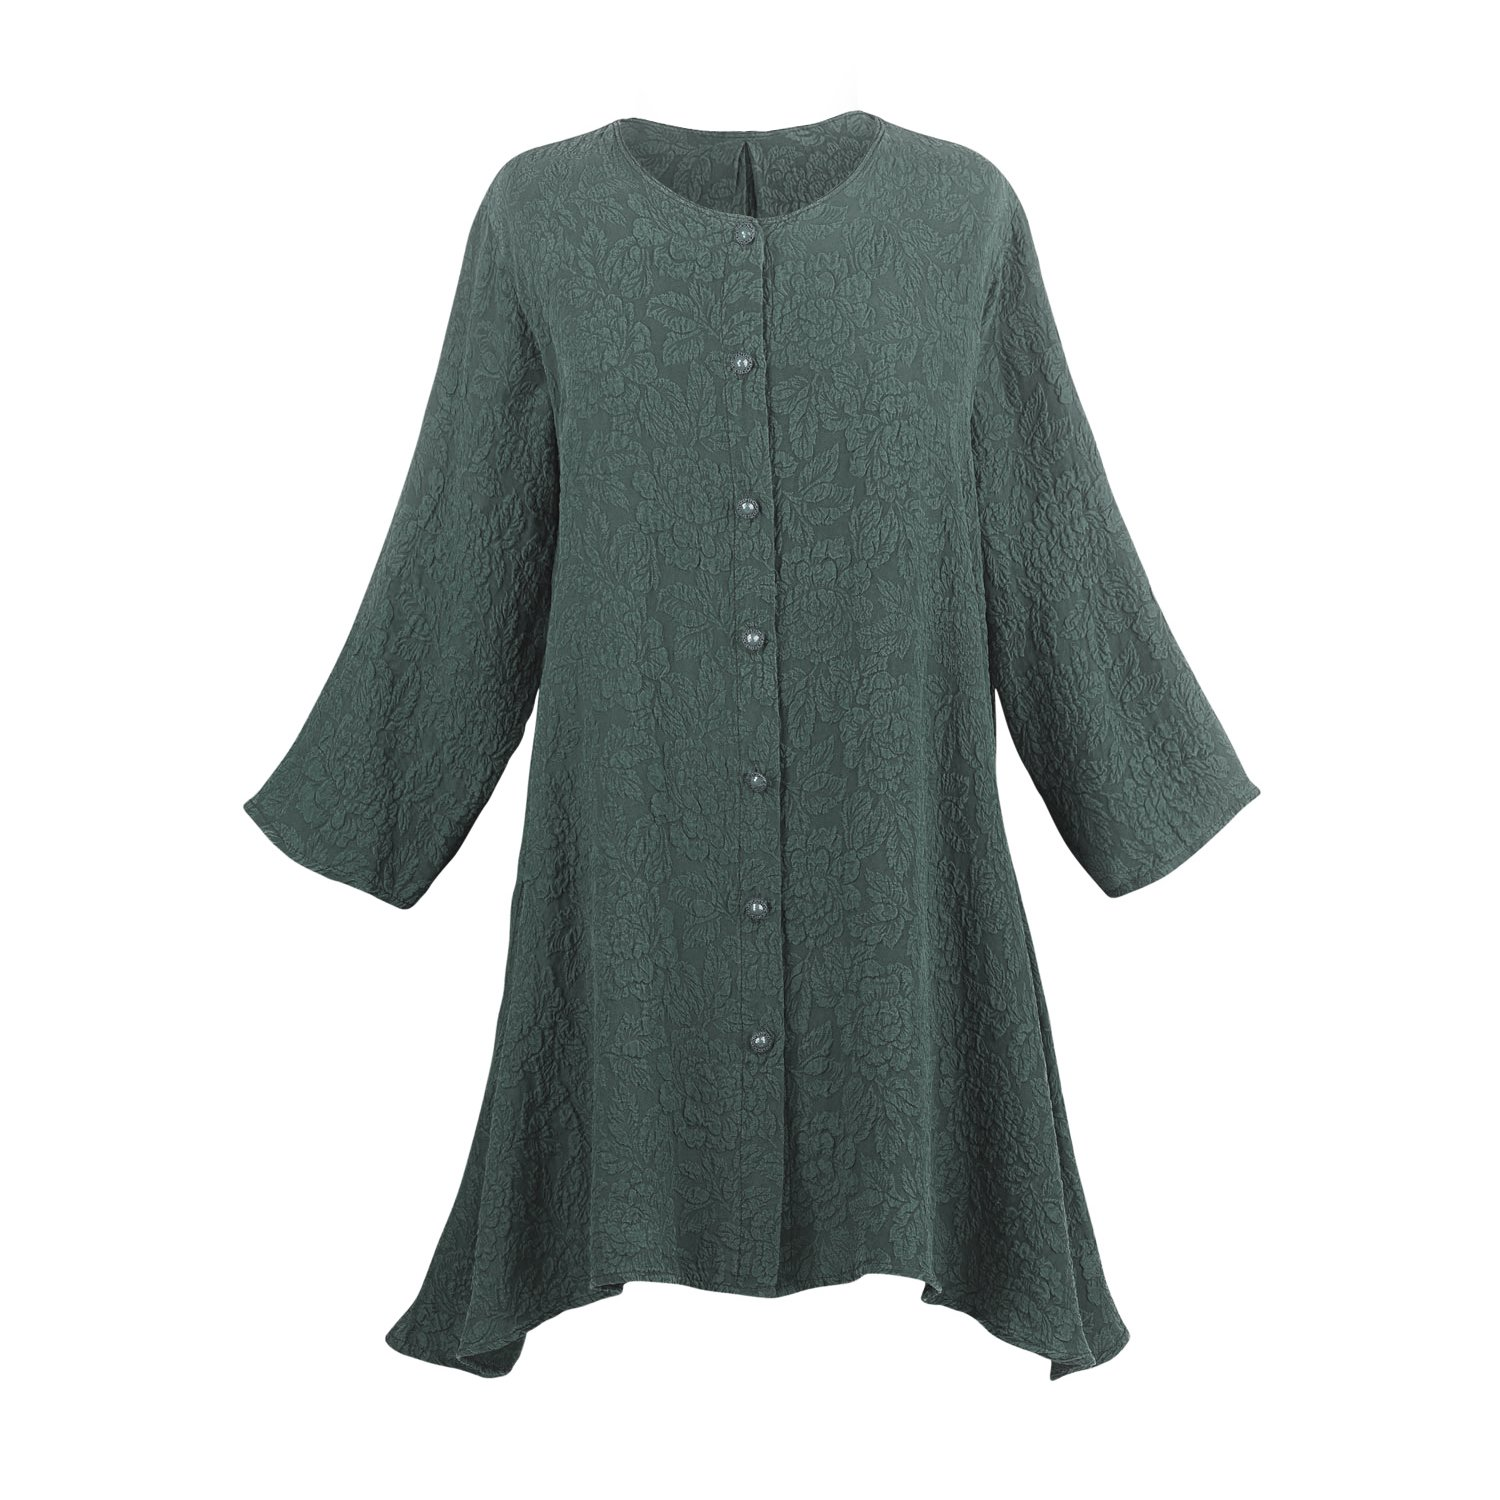 CATALOG CLASSICS Women's Tunic Top - Textured Silk Button Down Blouse - 3/4 Sleeves - Teal - Size 3